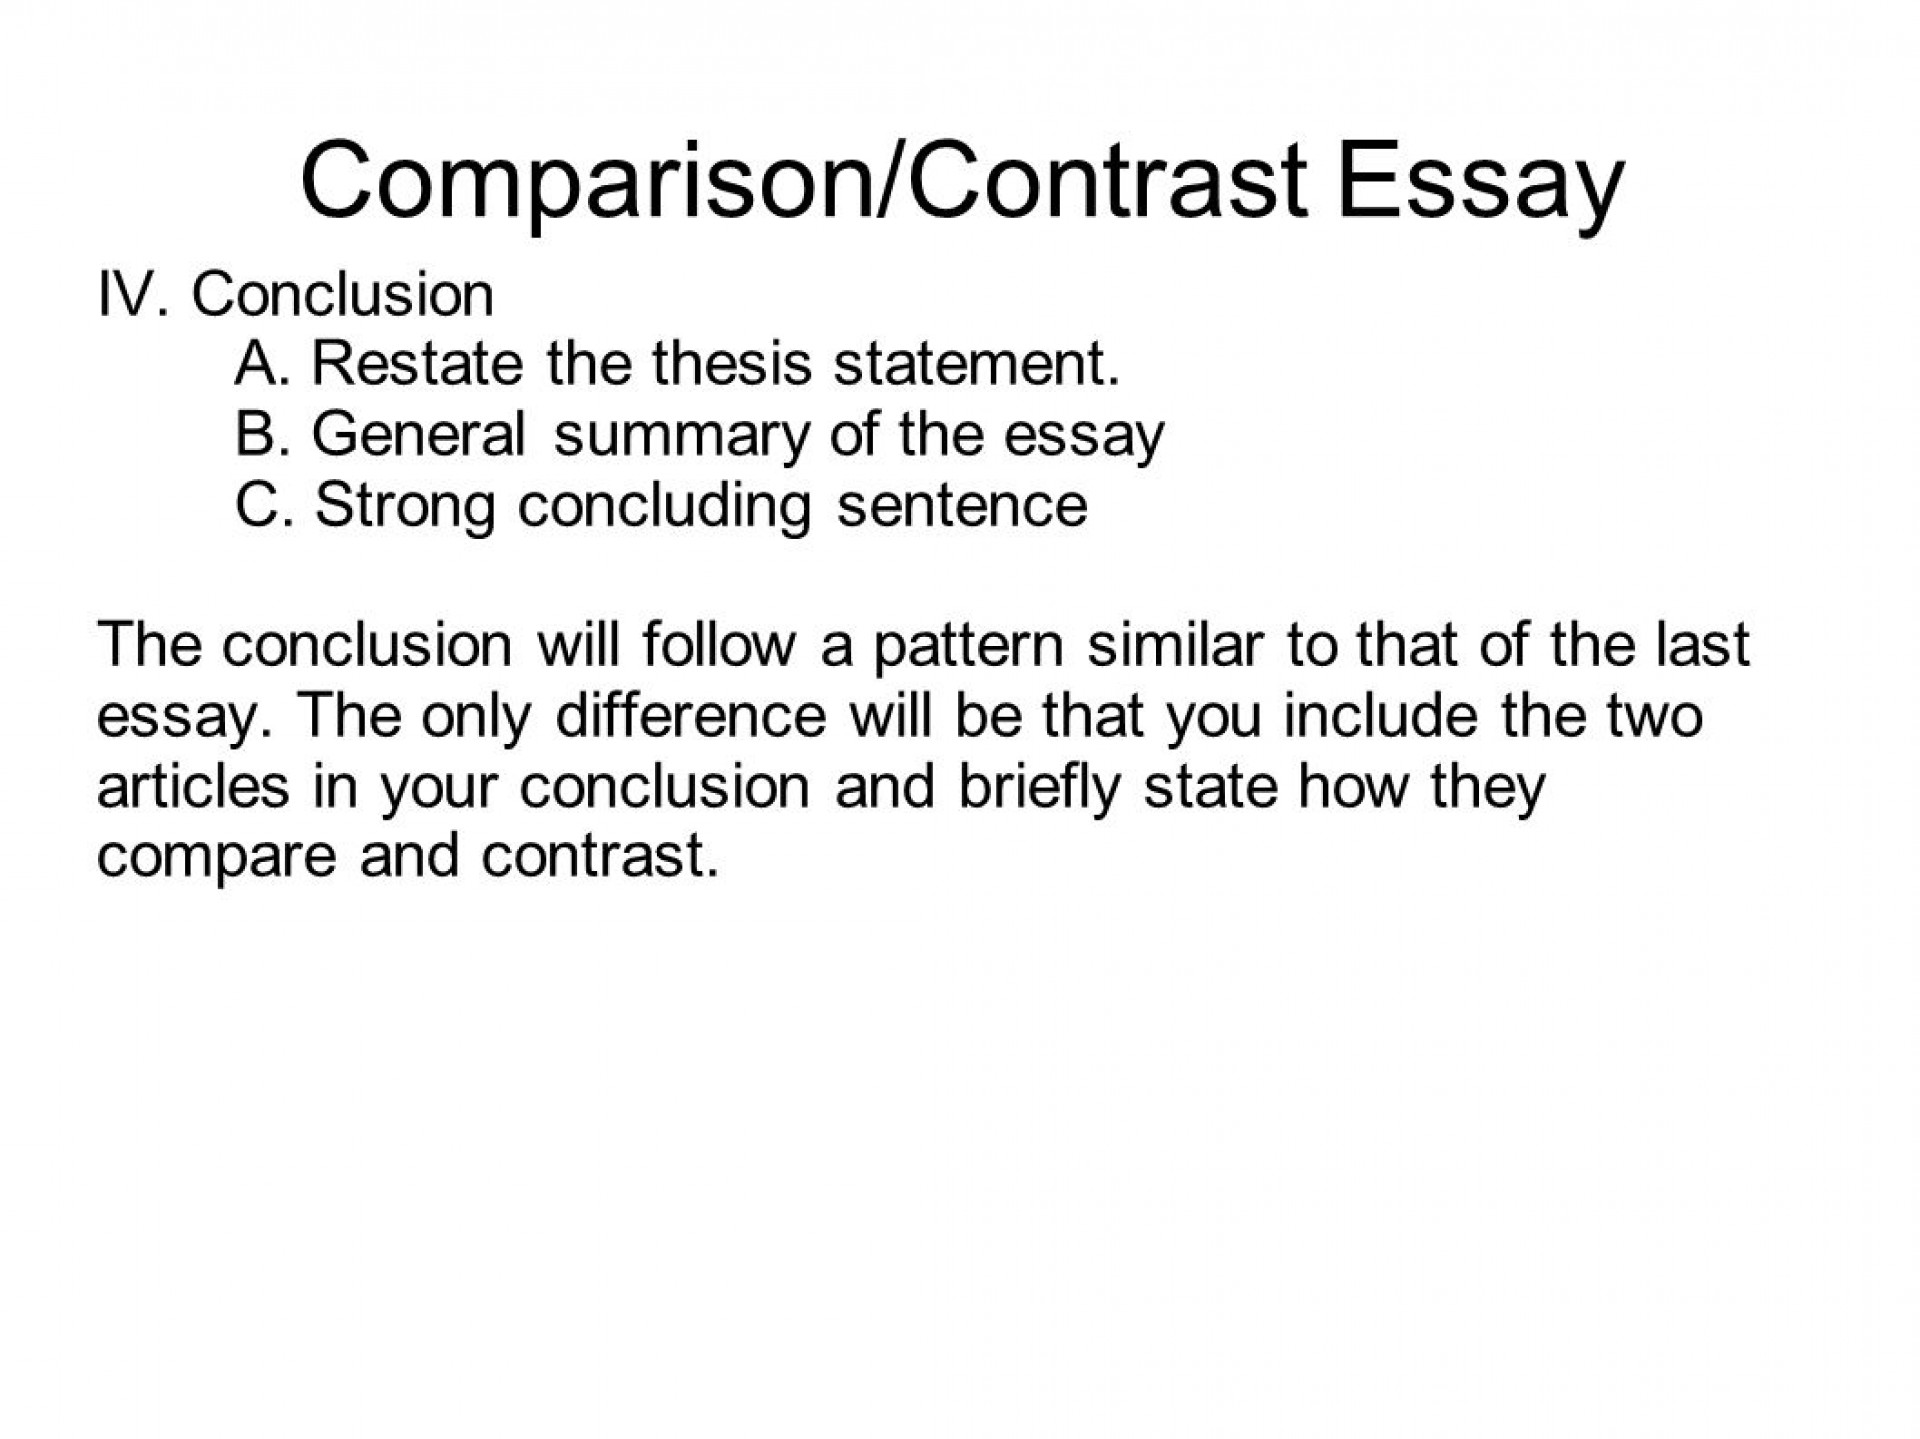 004 Conclusion Paragraph For Compare And Contrast Essay In Writing Portfolio Mr Butner Due Example Shocking Thesis Statement Generator How To Make A 1920